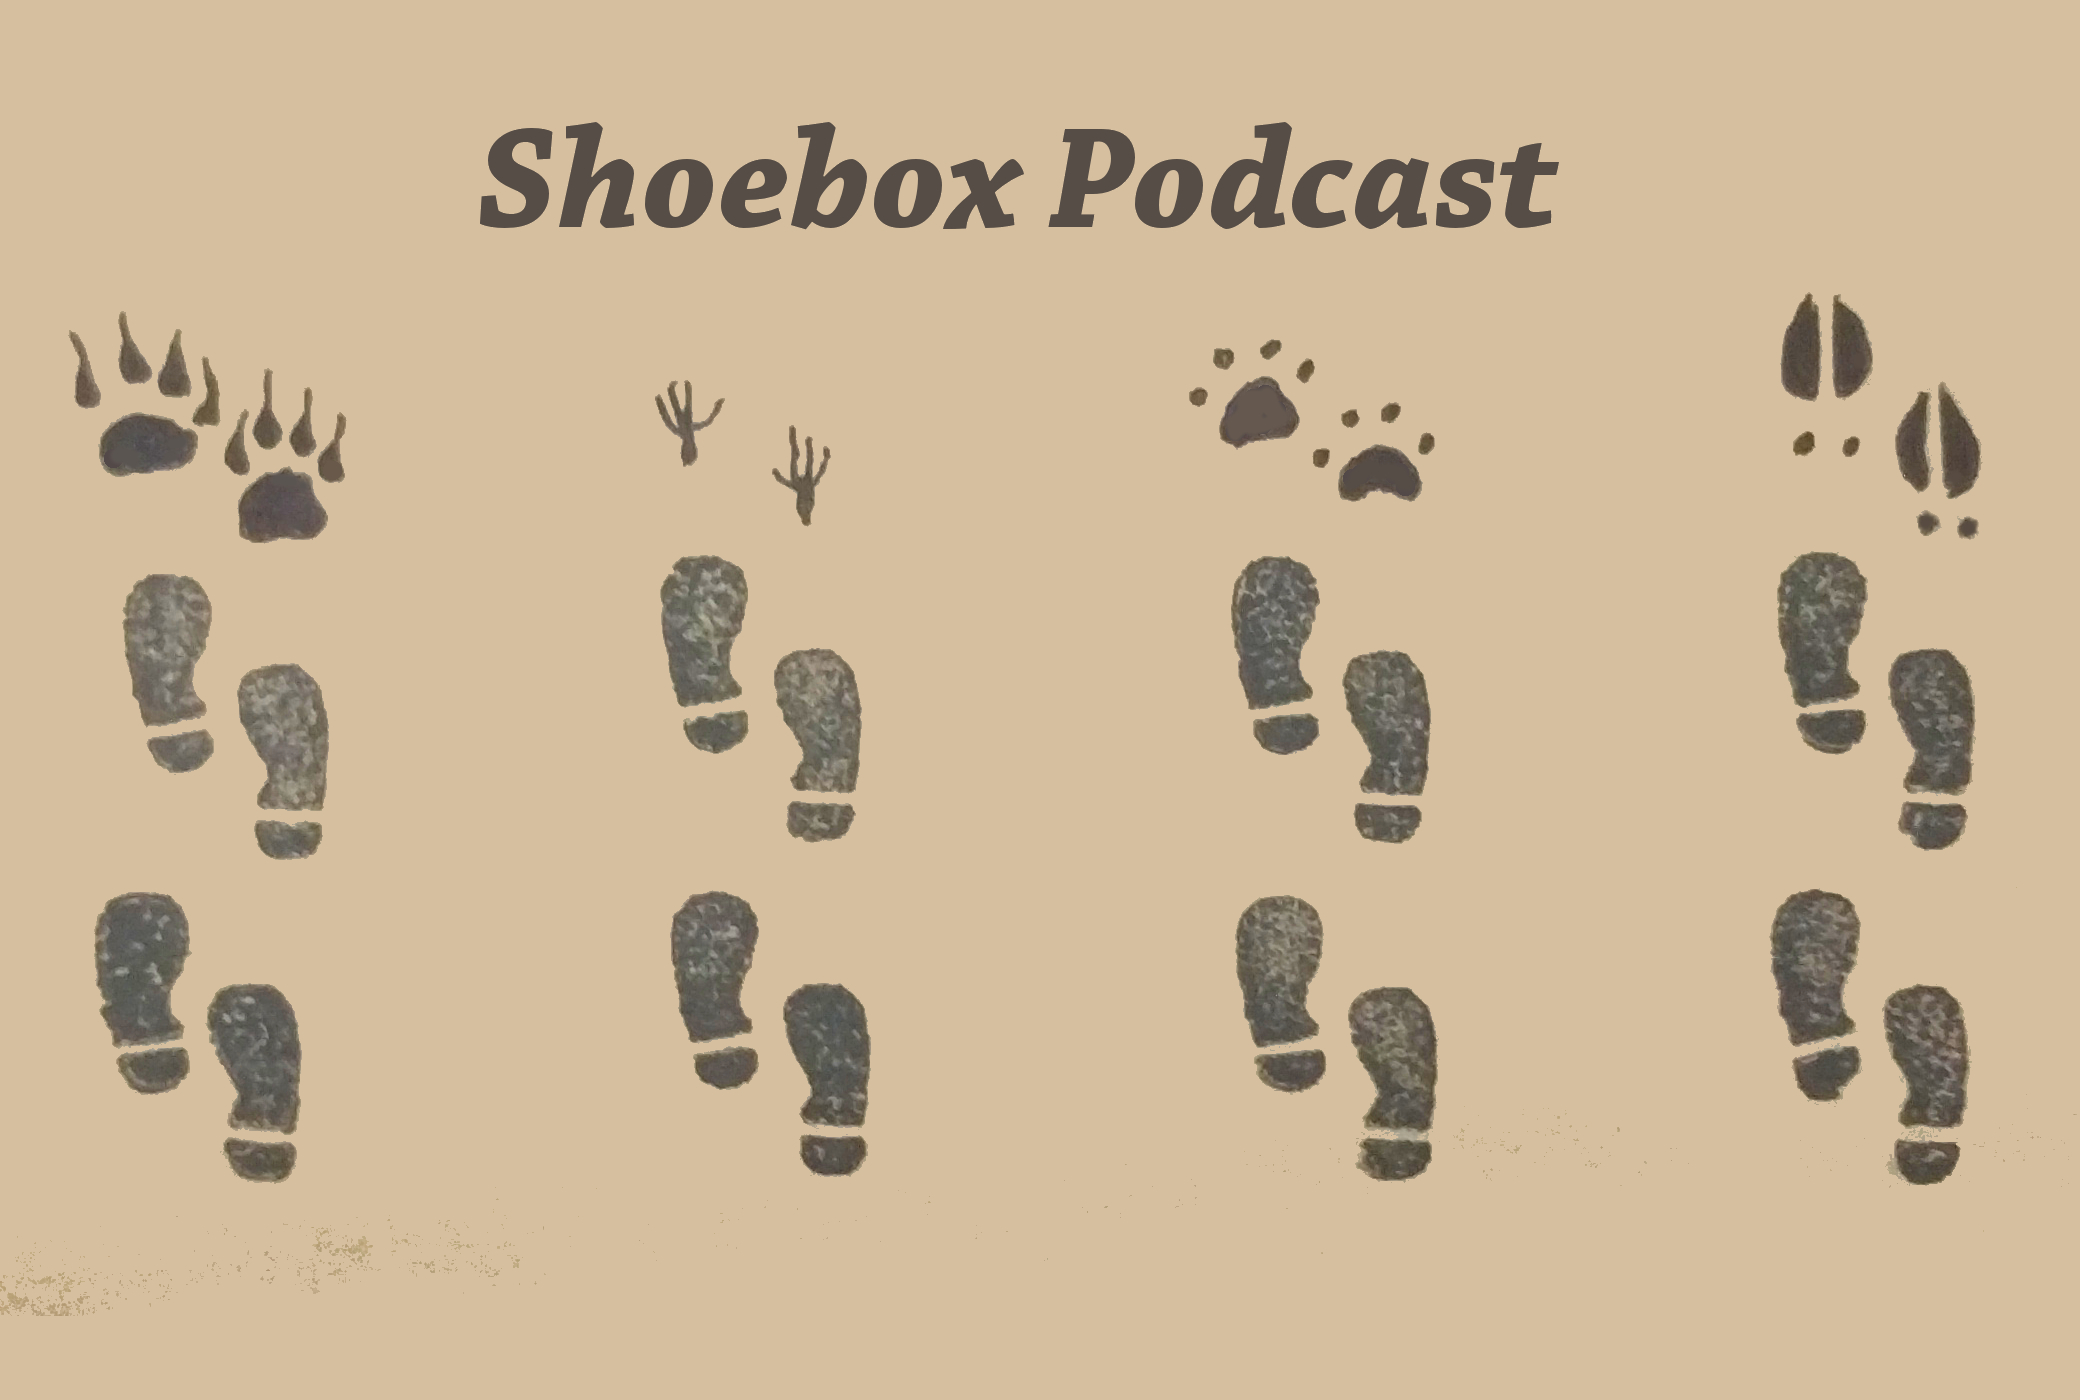 Artwork for Shoebox Podcast teaser